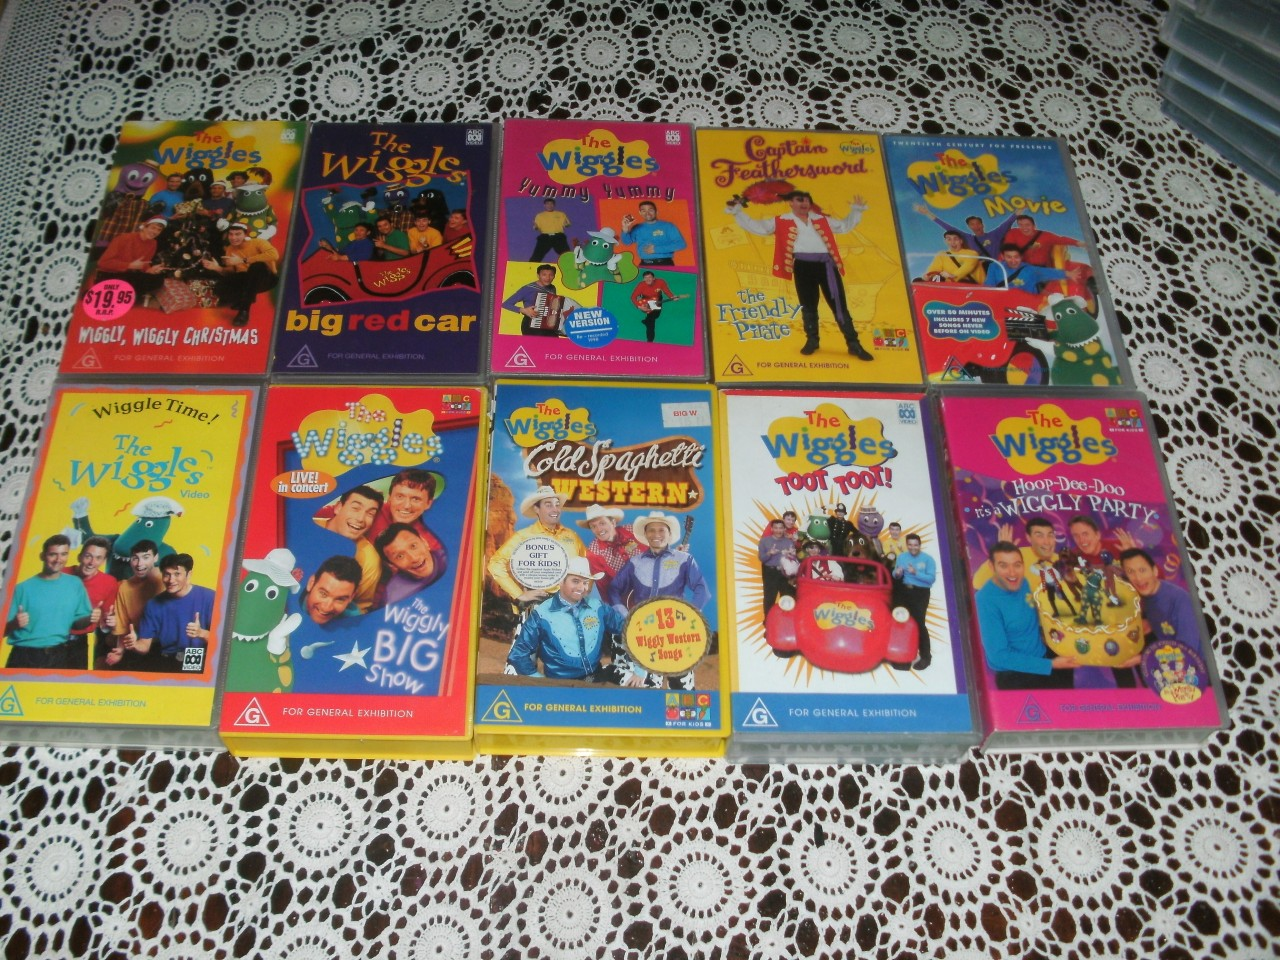 Wiggles Videos THE Wiggles X10 Videos...